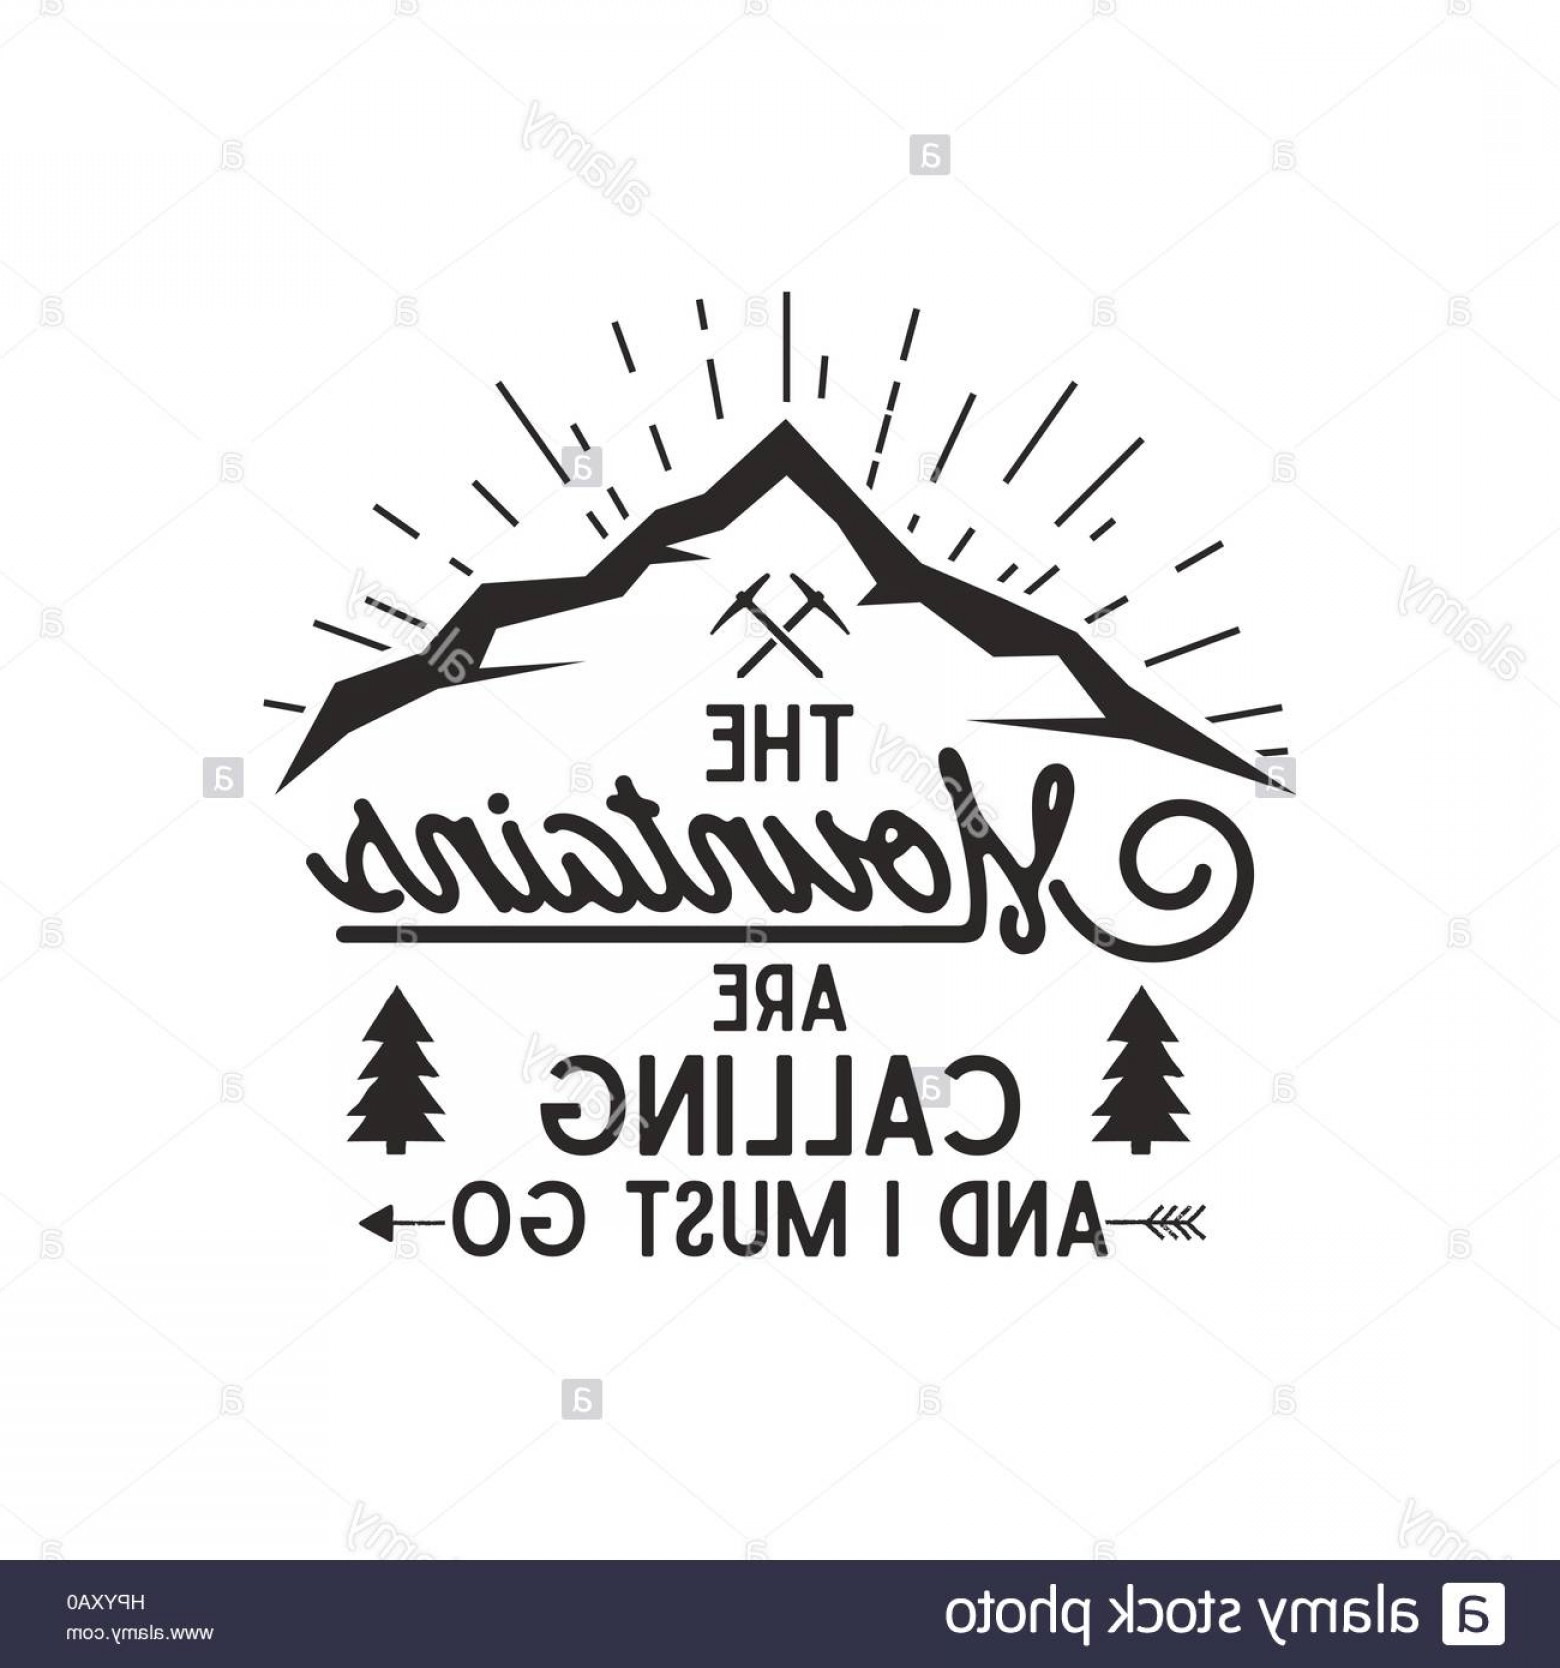 Hipster Logo Vectors Mountain: Stock Photo Mountains Are Calling Vector Poster Mountains Explorer Vintage Hand